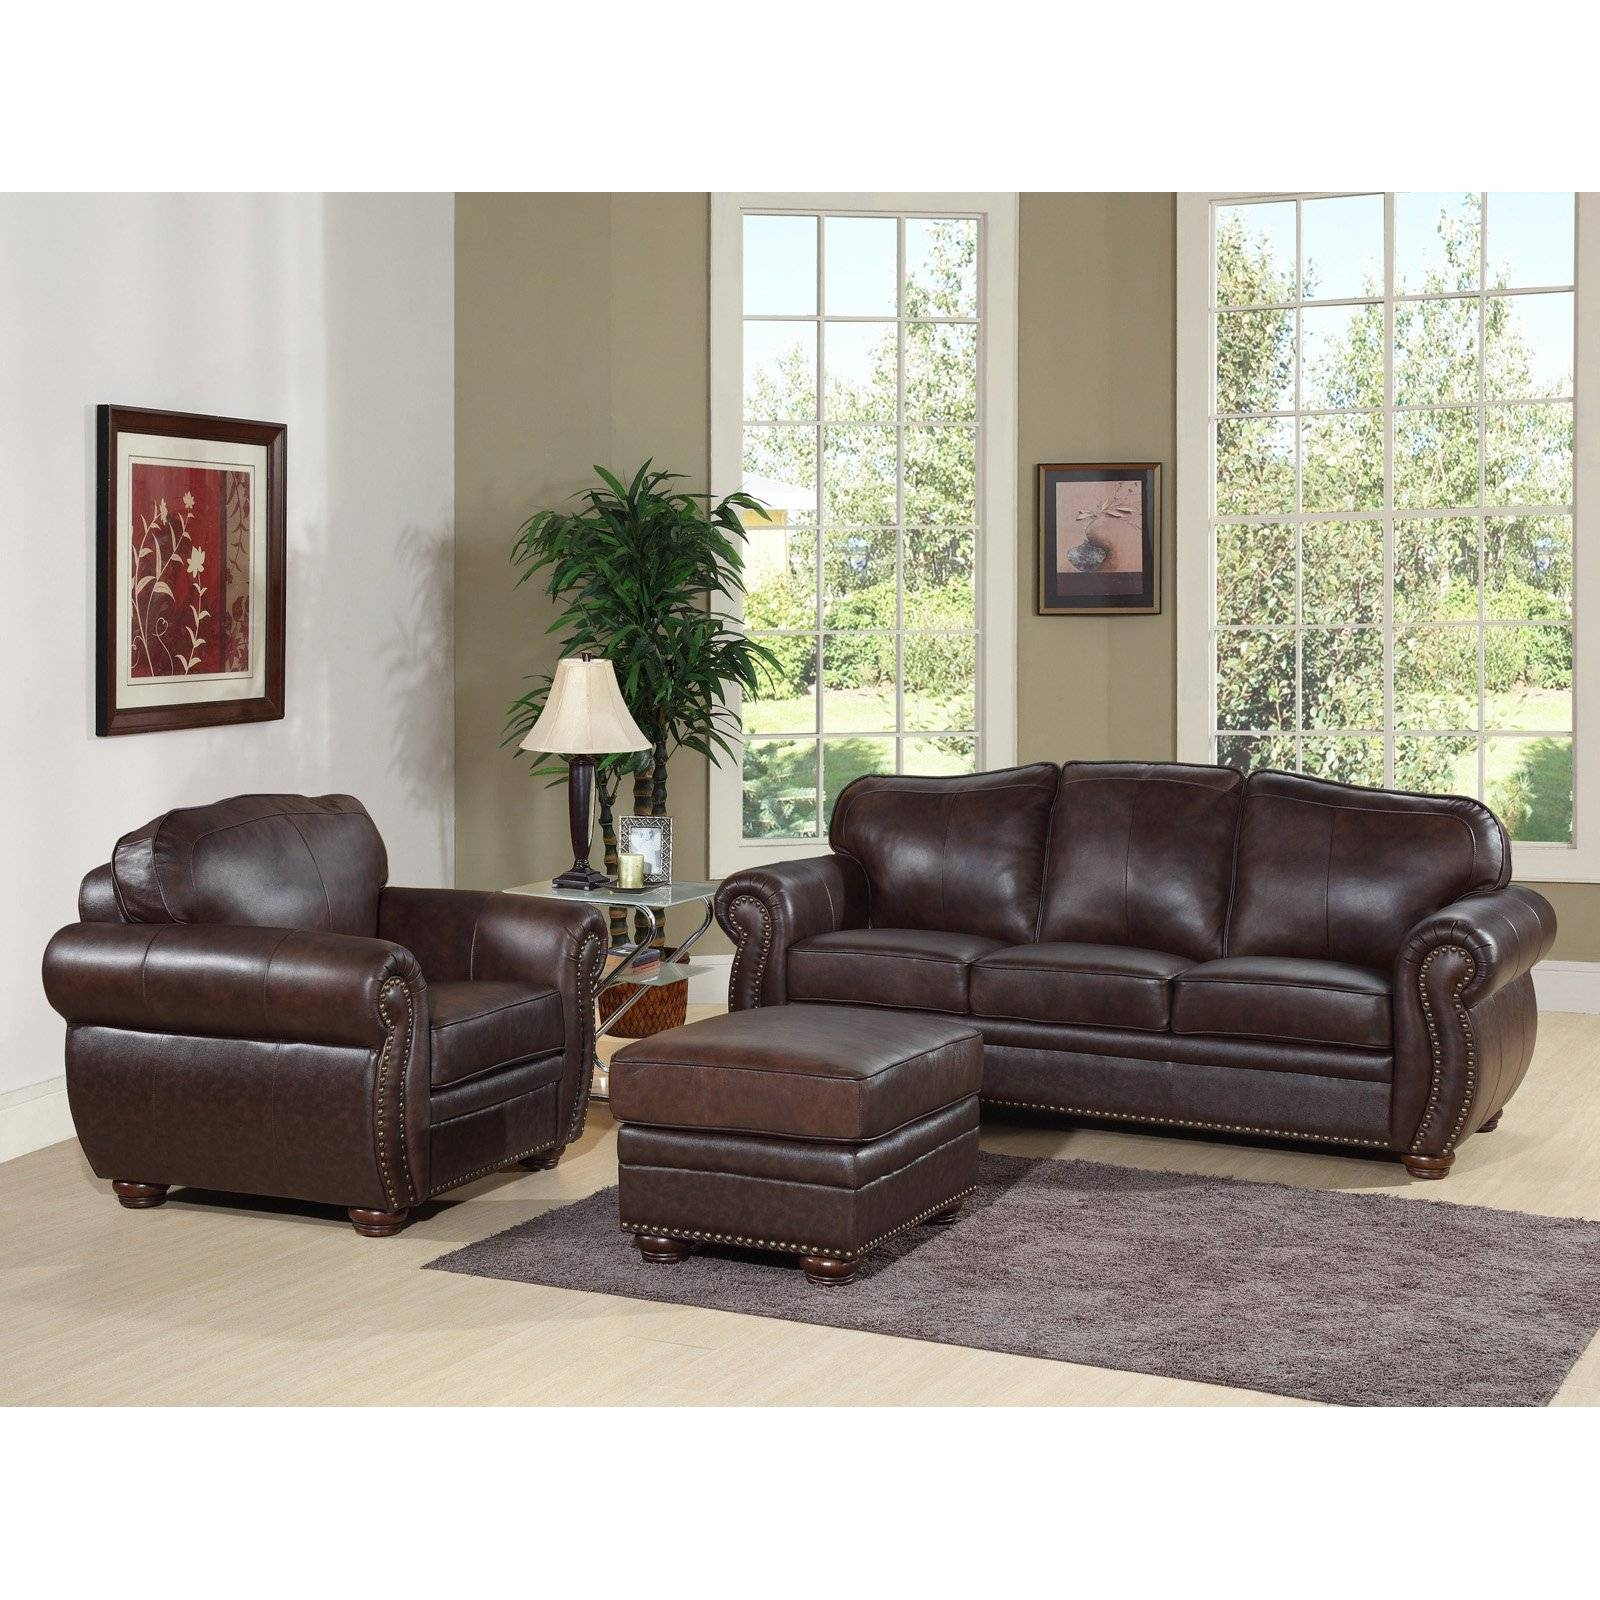 Abbyson Berkeley Brown Italian Leather Chair And Ottoman Sofa Set in Abbyson Sofas (Image 1 of 15)